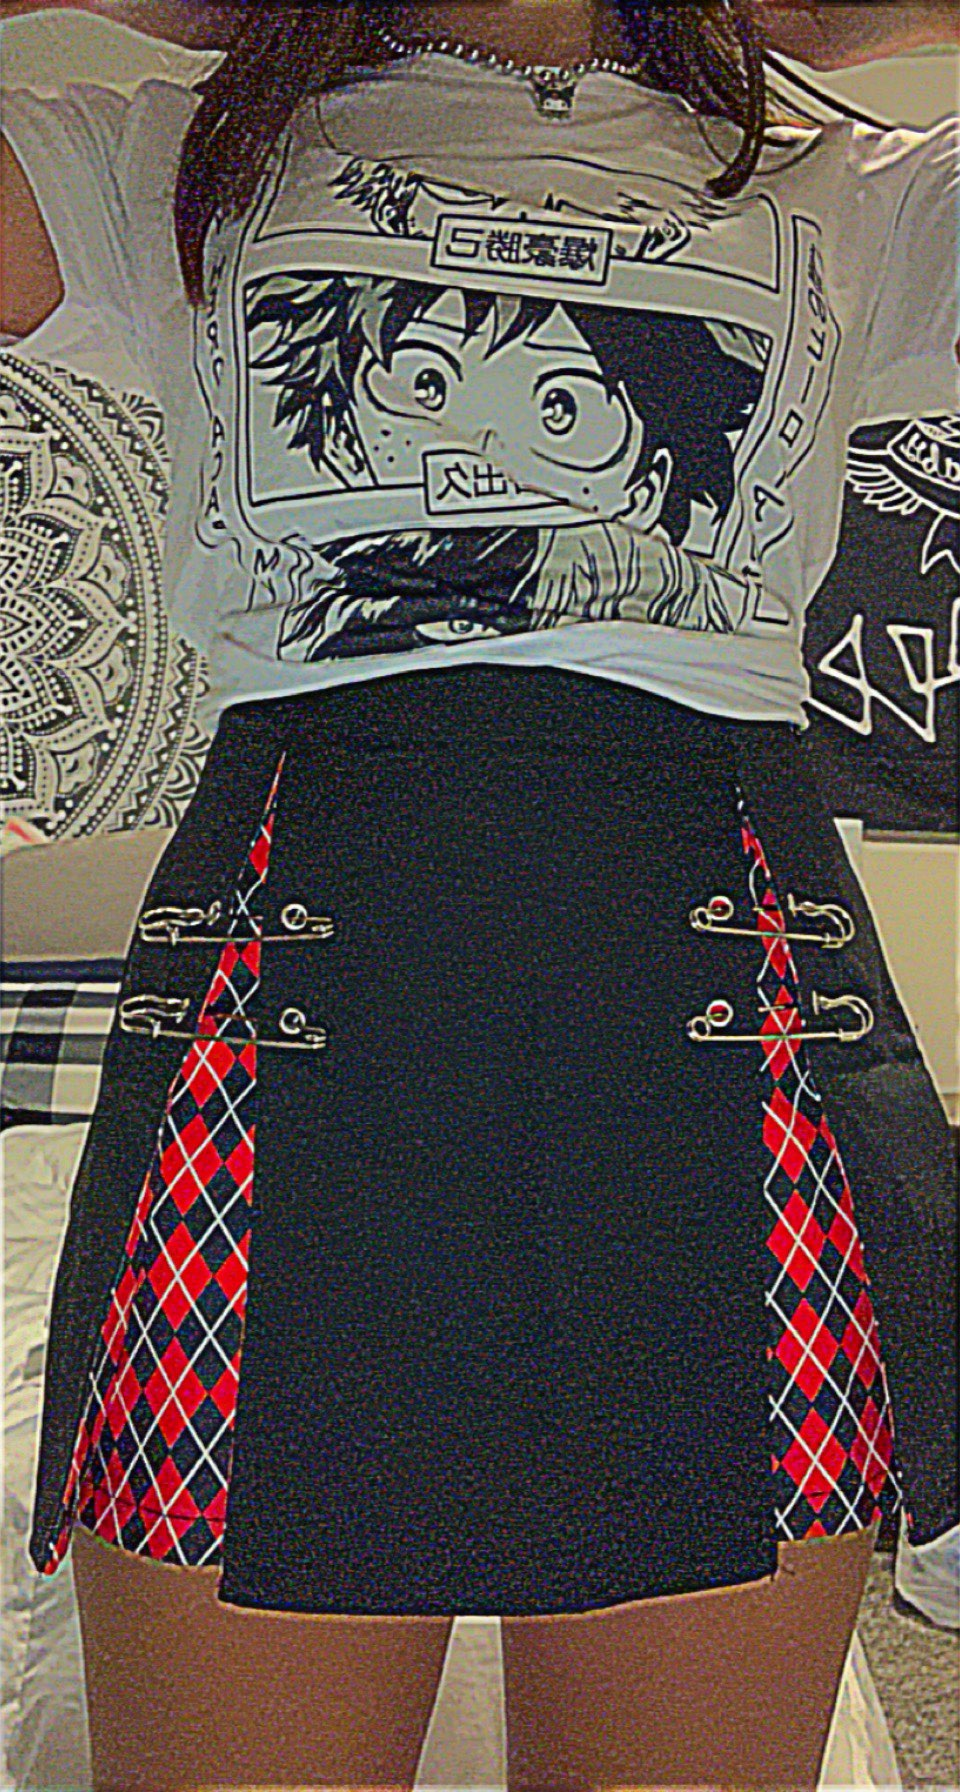 A-Line Gothic Skirt with Plaid inserts photo review